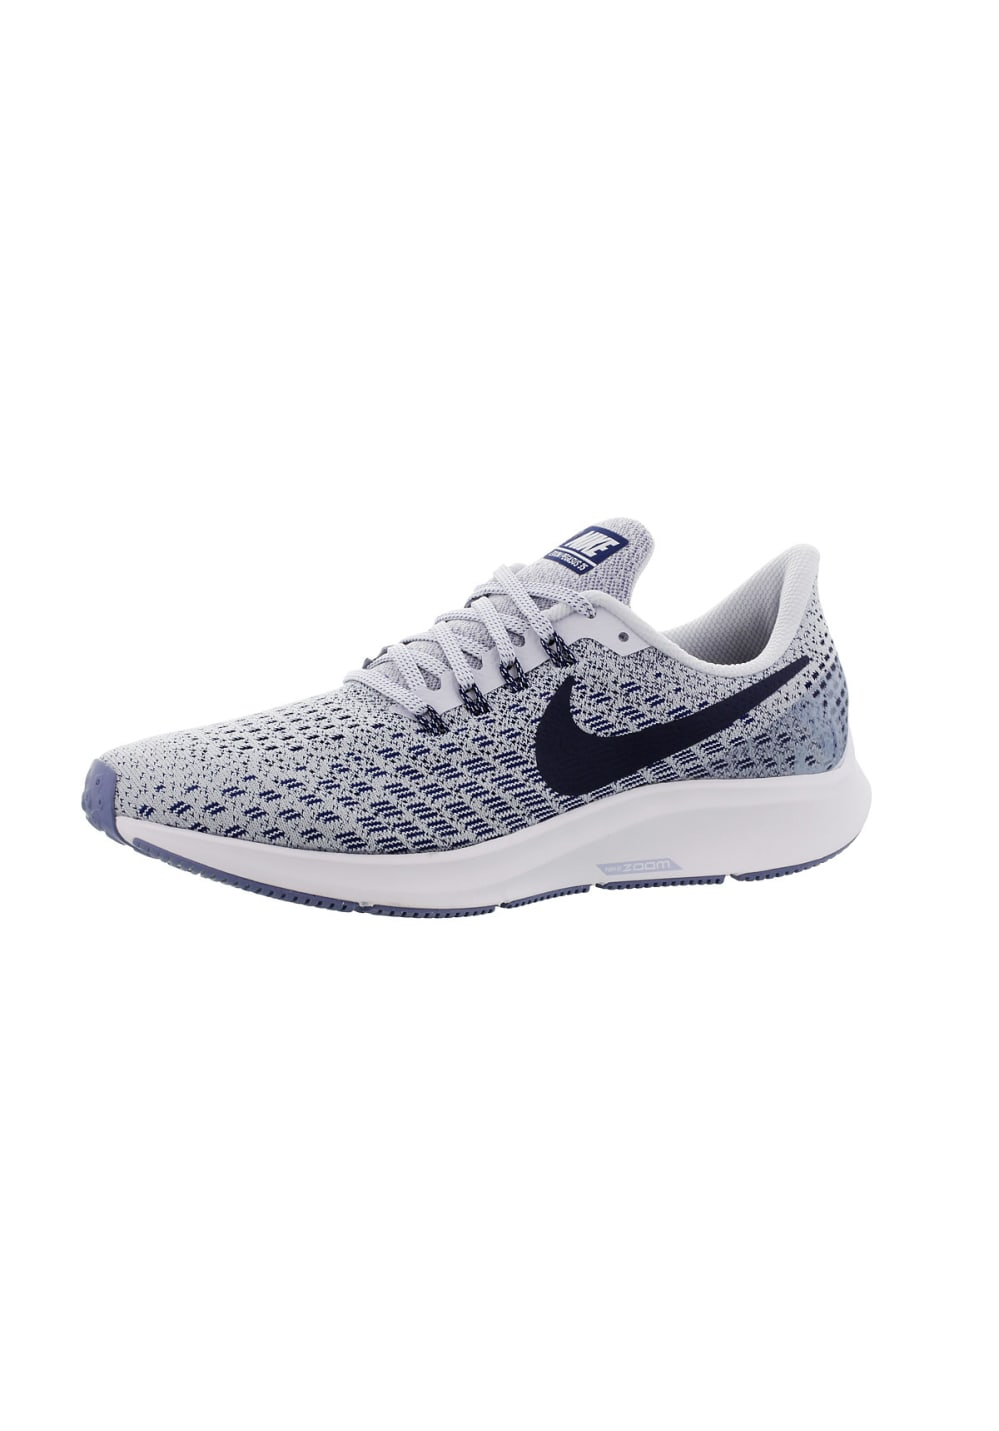 best service 3887d 74f07 Nike Air Zoom Pegasus 35 - Running shoes for Women - Grey